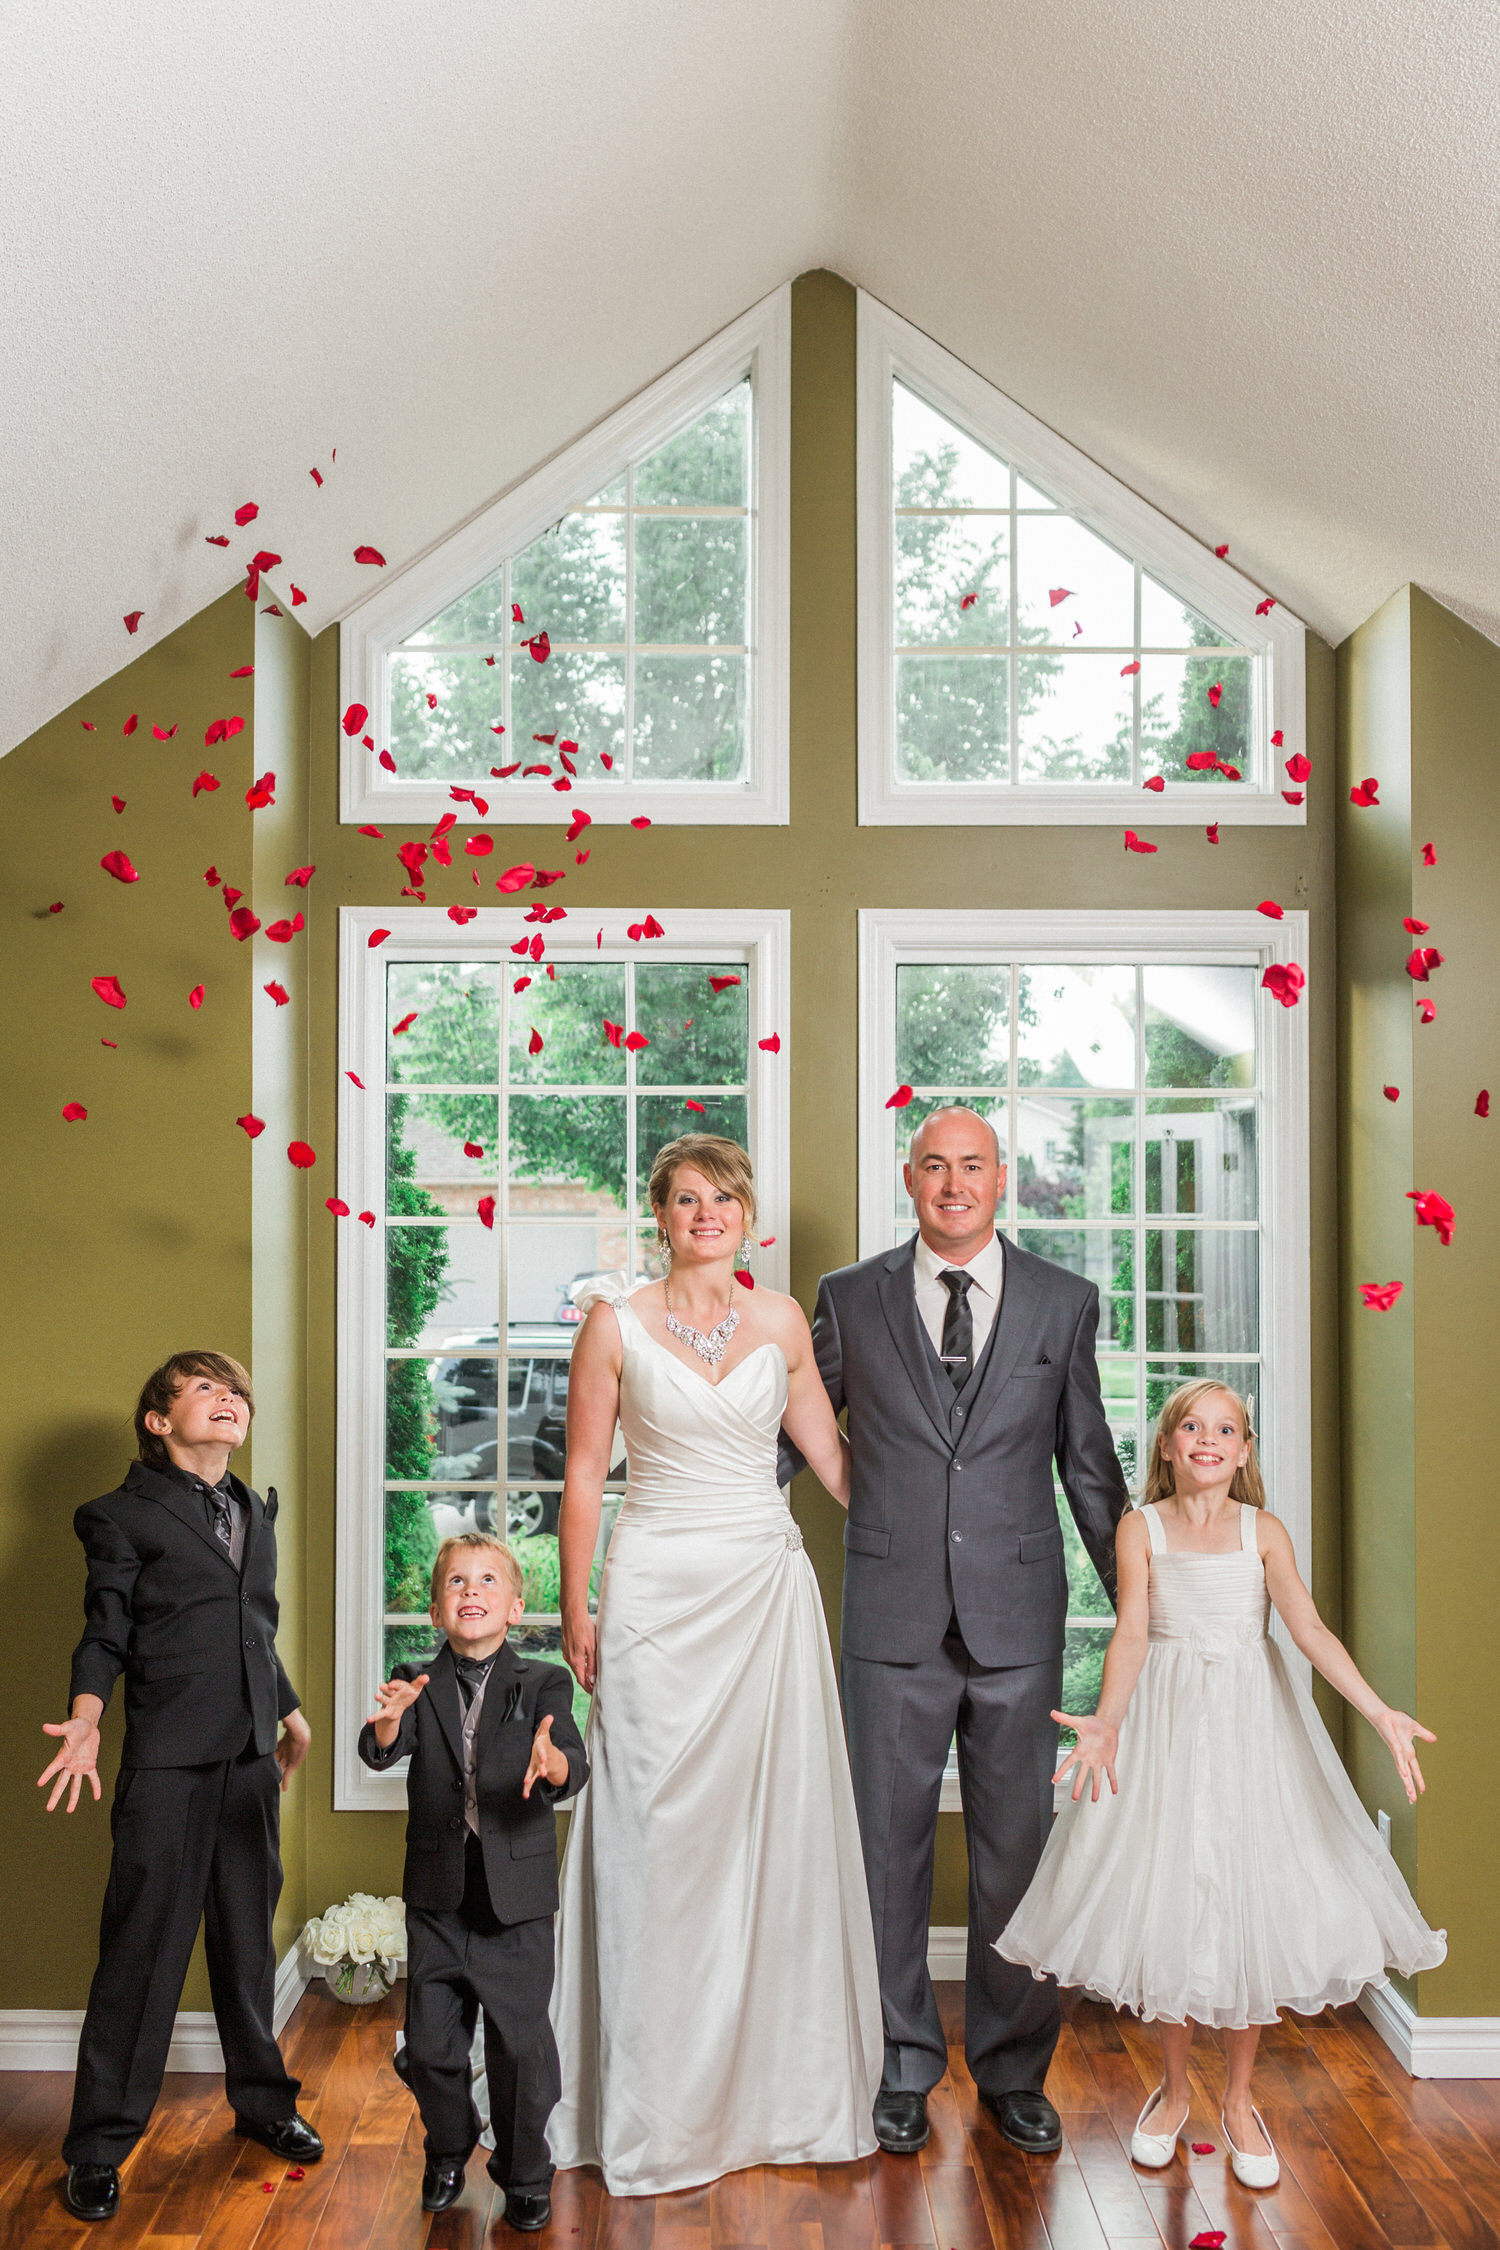 surprise-wedding-family-formal-1.jpg